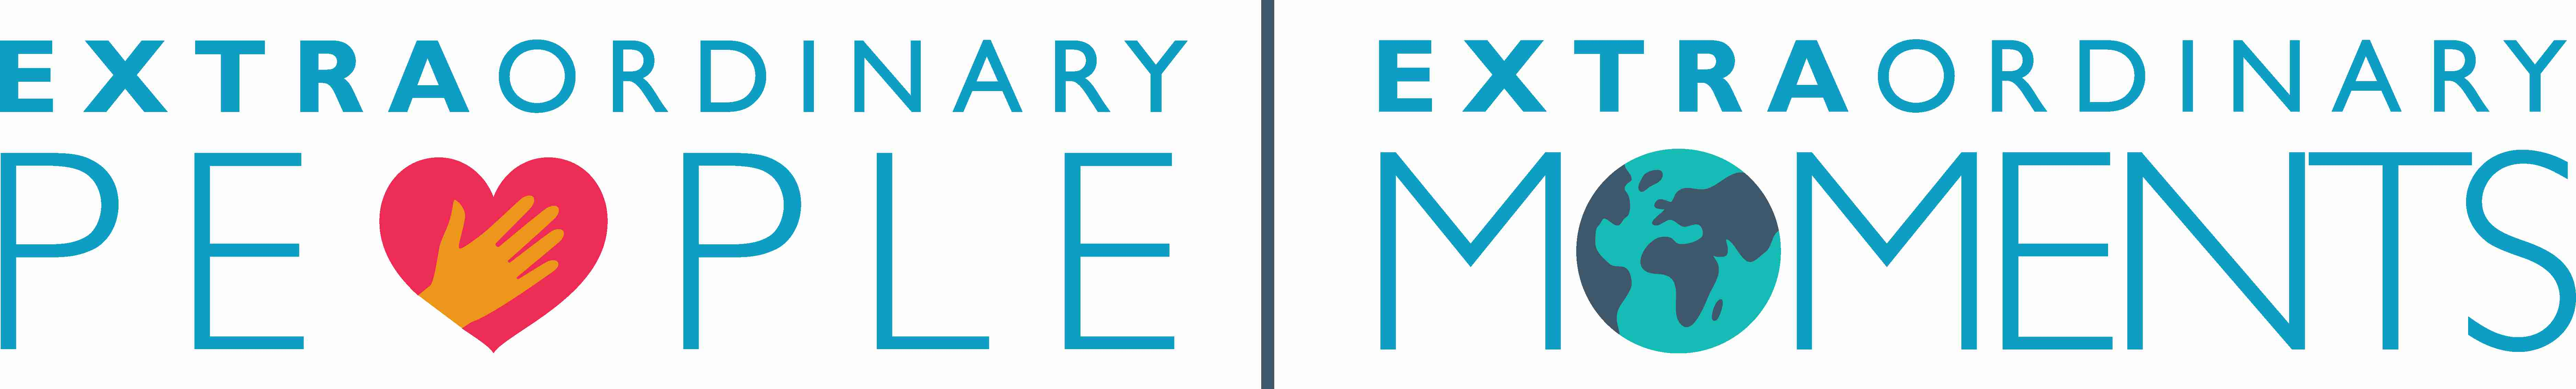 The Extraordinary People, Extraordinary Moments logo